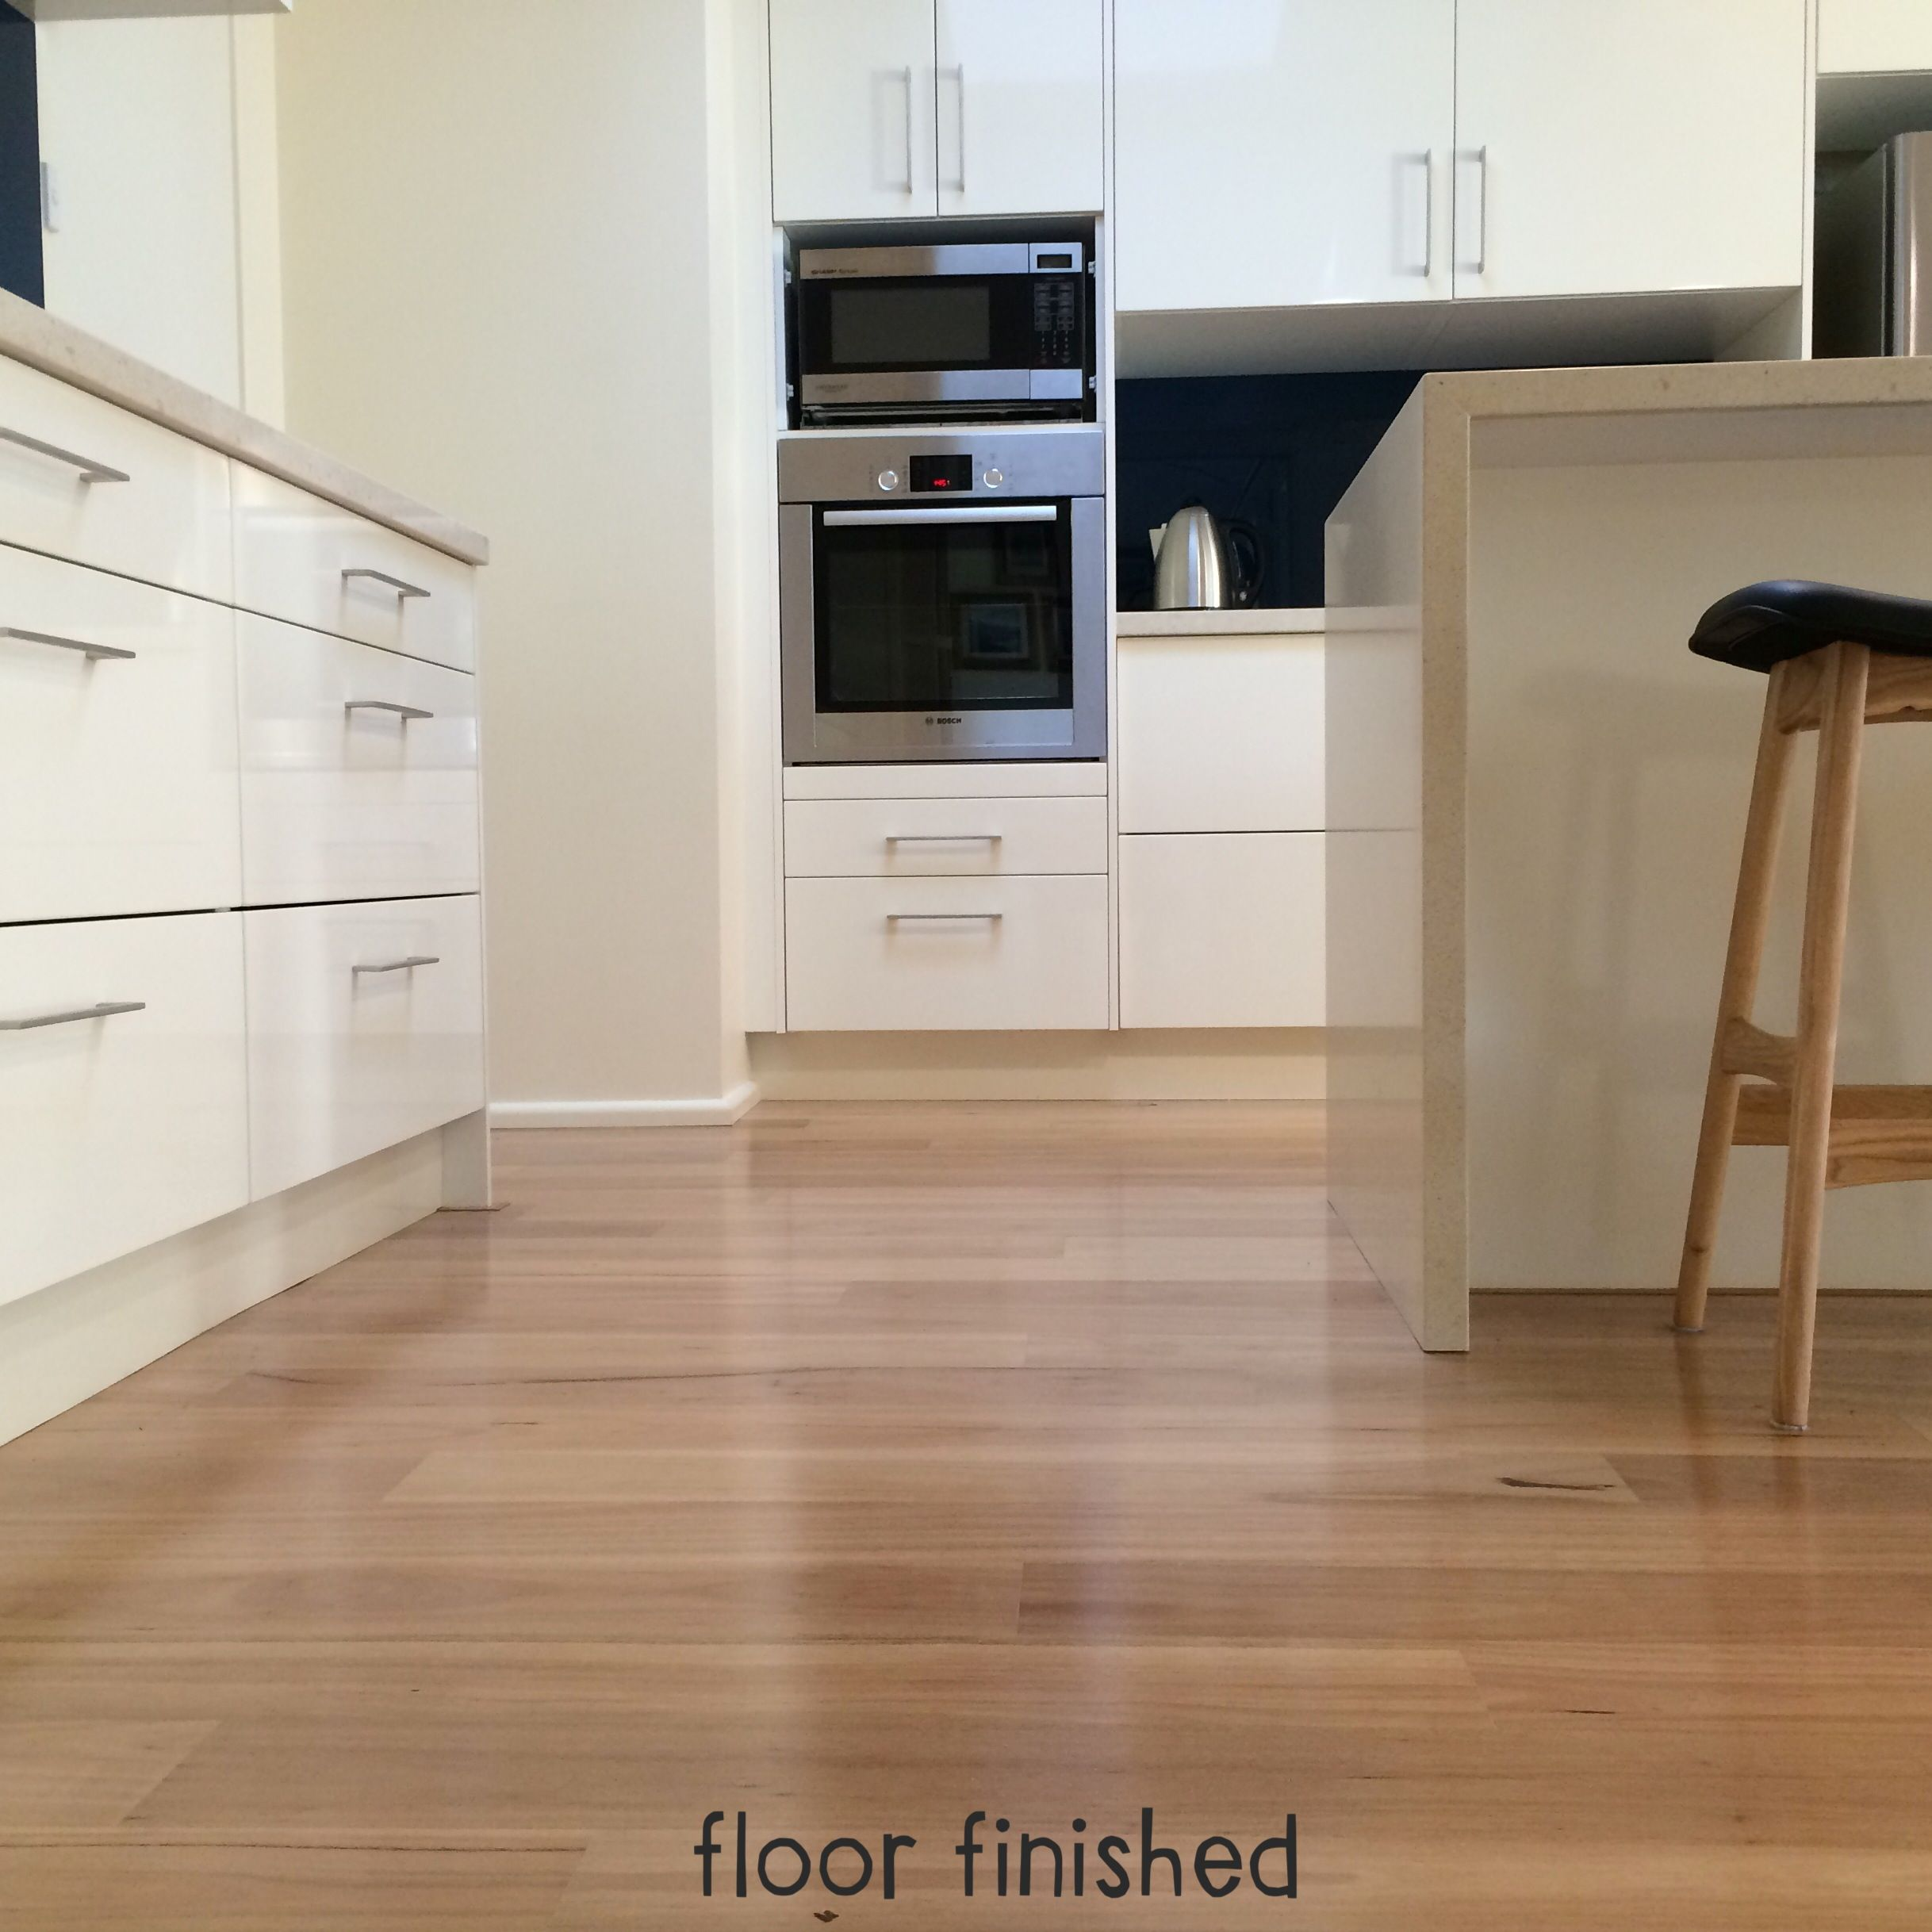 blackbutt floors finish our new kitchen fiona moore